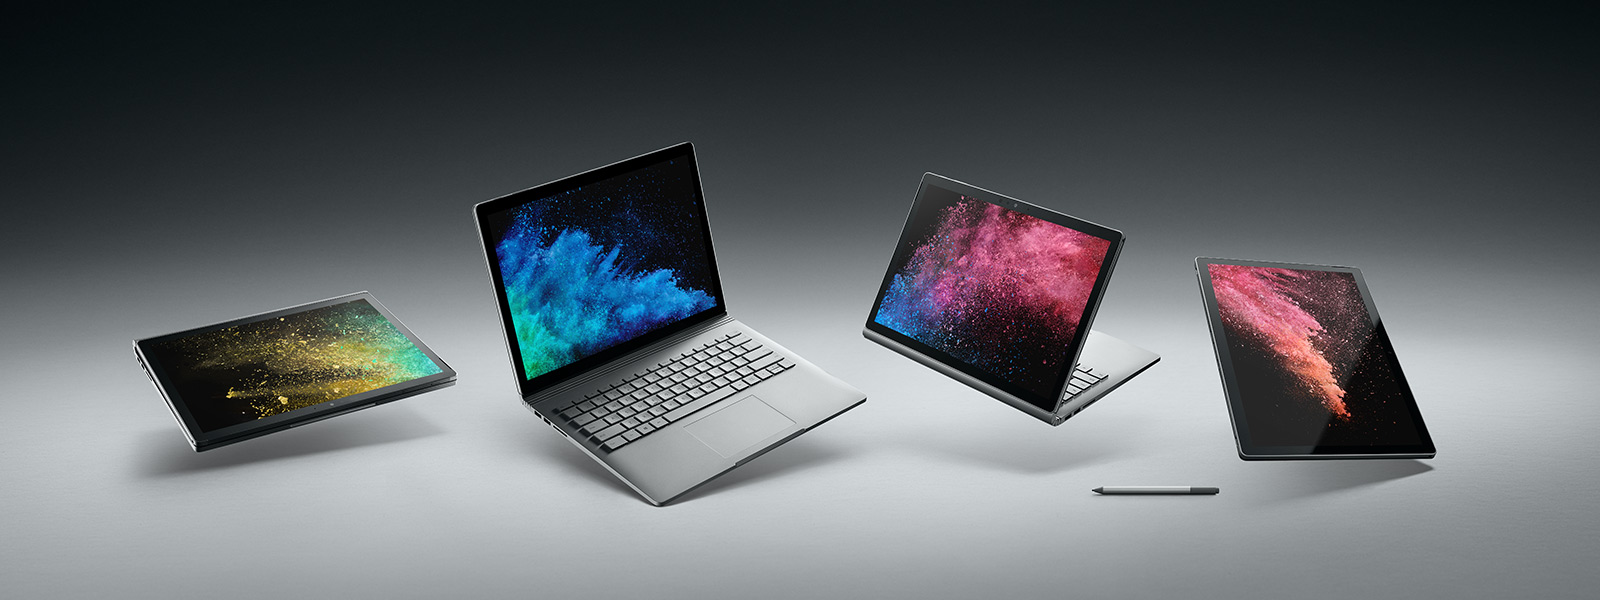 Vier Surface Book 2-Laptops in verschiedenen Positionen